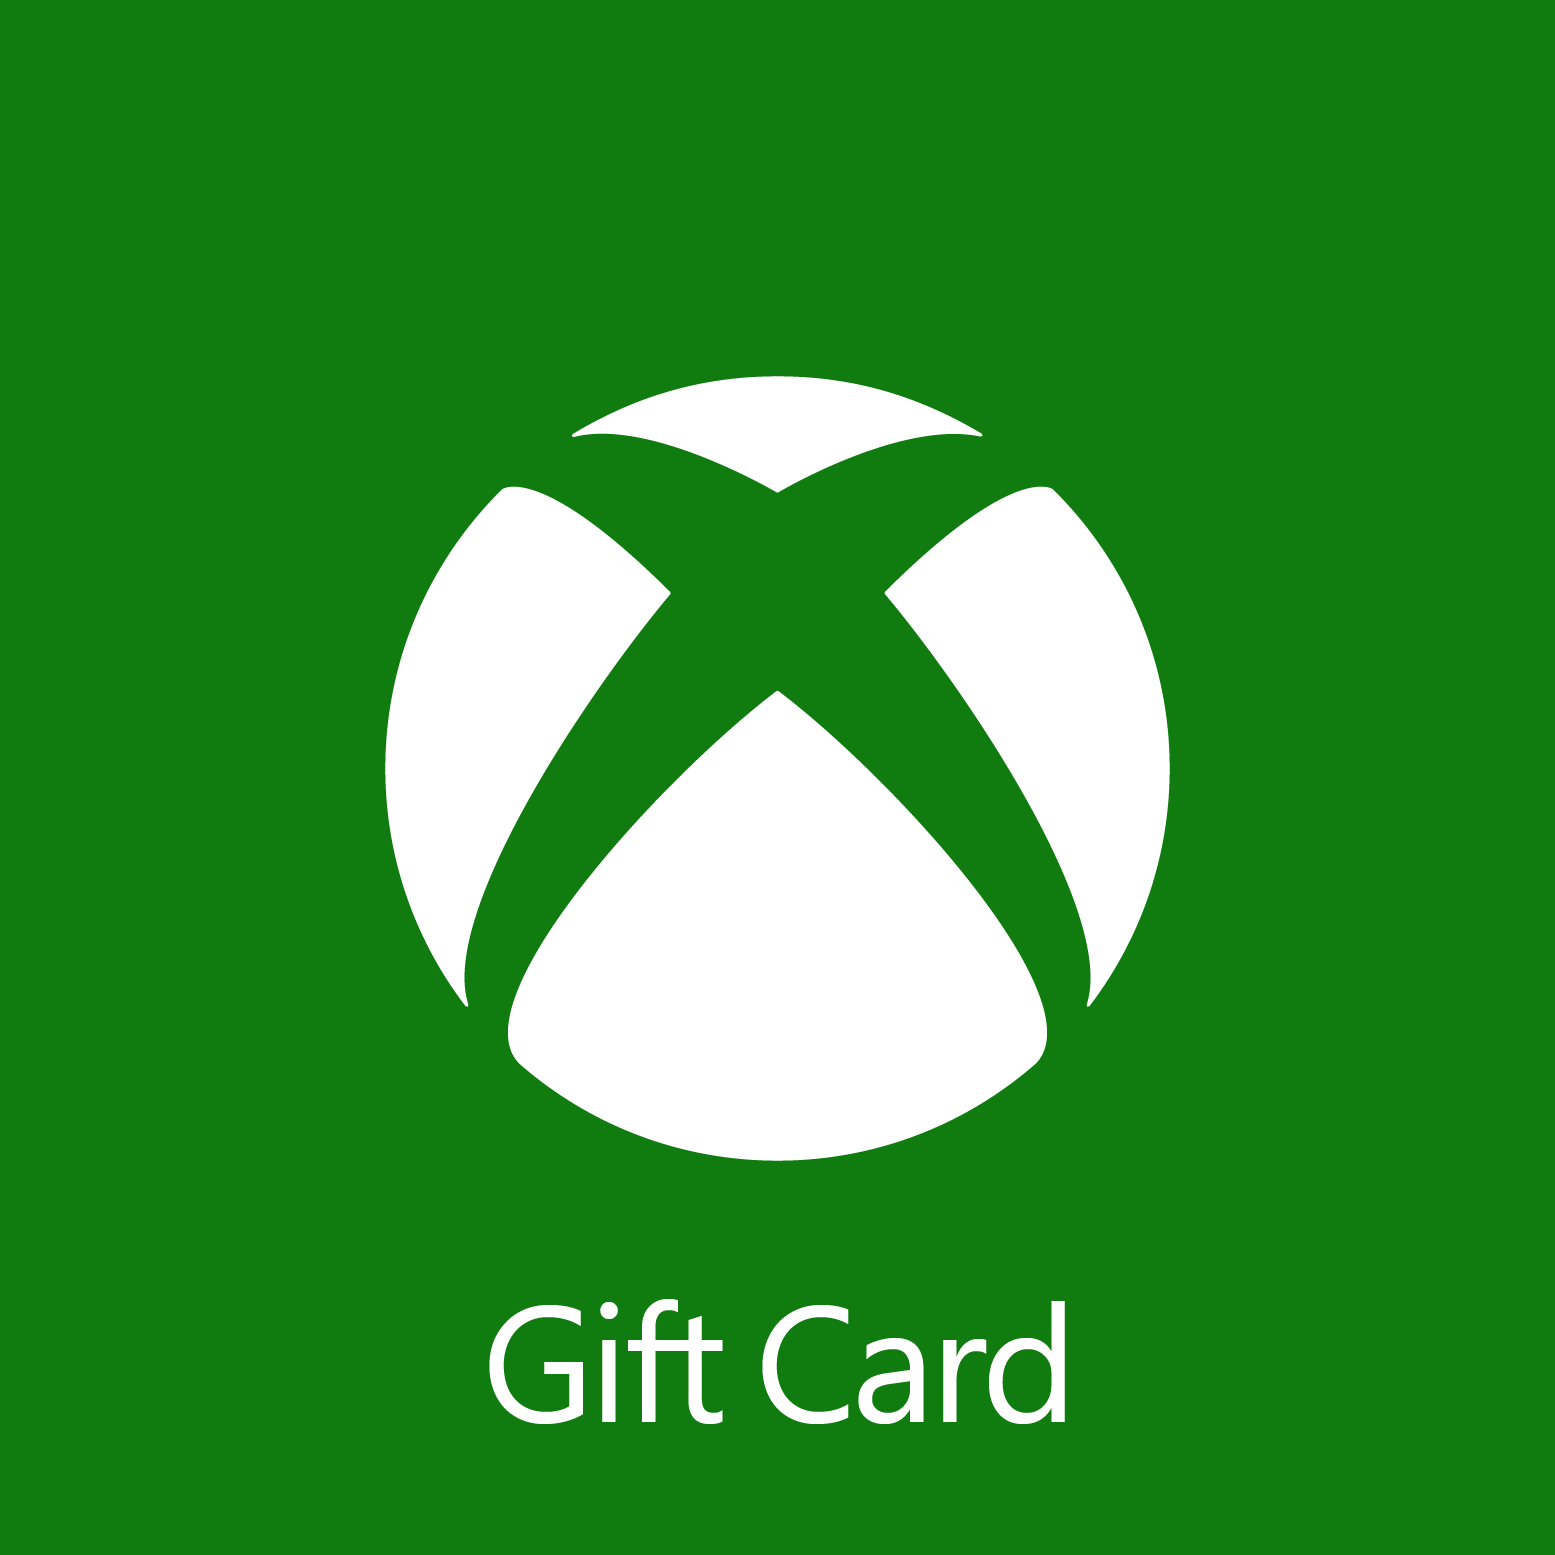 RE1Xx20?ver=255f - $62.00 Xbox Digital Gift Card